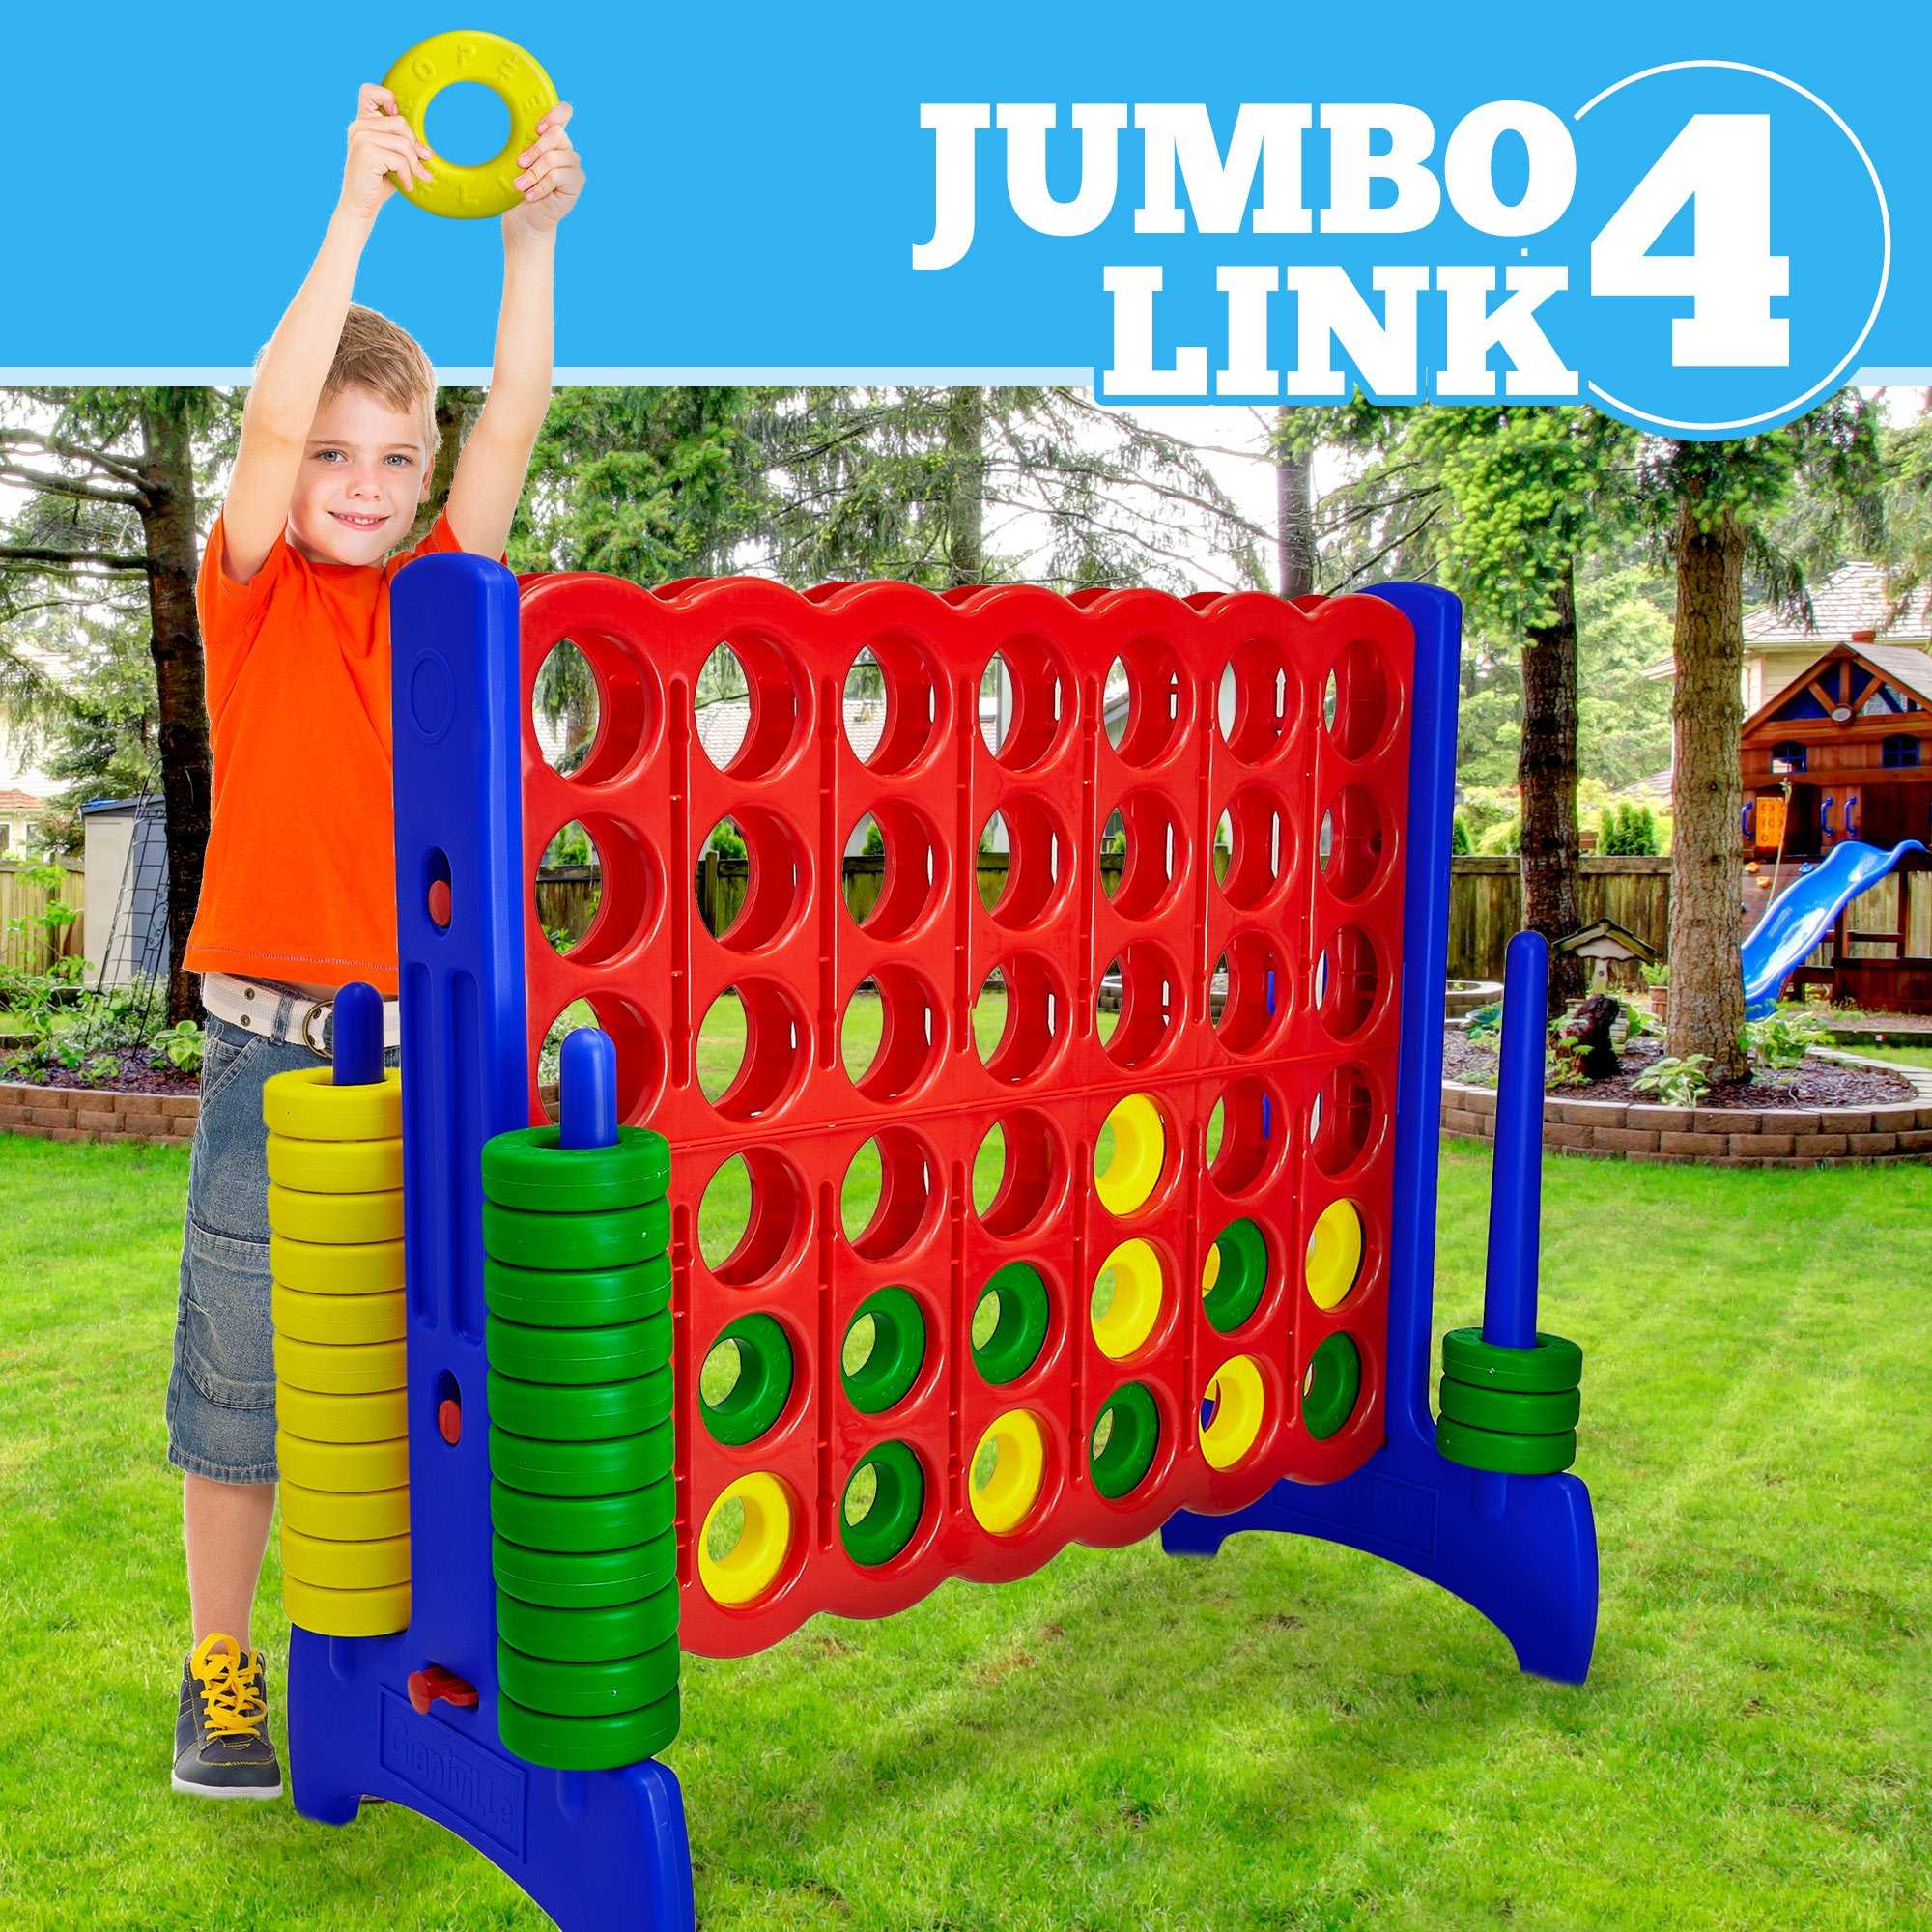 Giant 4 in a Row Connect Game - 4 Feet Wide by 3.5 Feet Tall Oversized Floor Activity for Kids and Adults - Jumbo Sized for Outdoor and Indoor Play - by Giantville, Blue/Red by Giantville (Image #5)